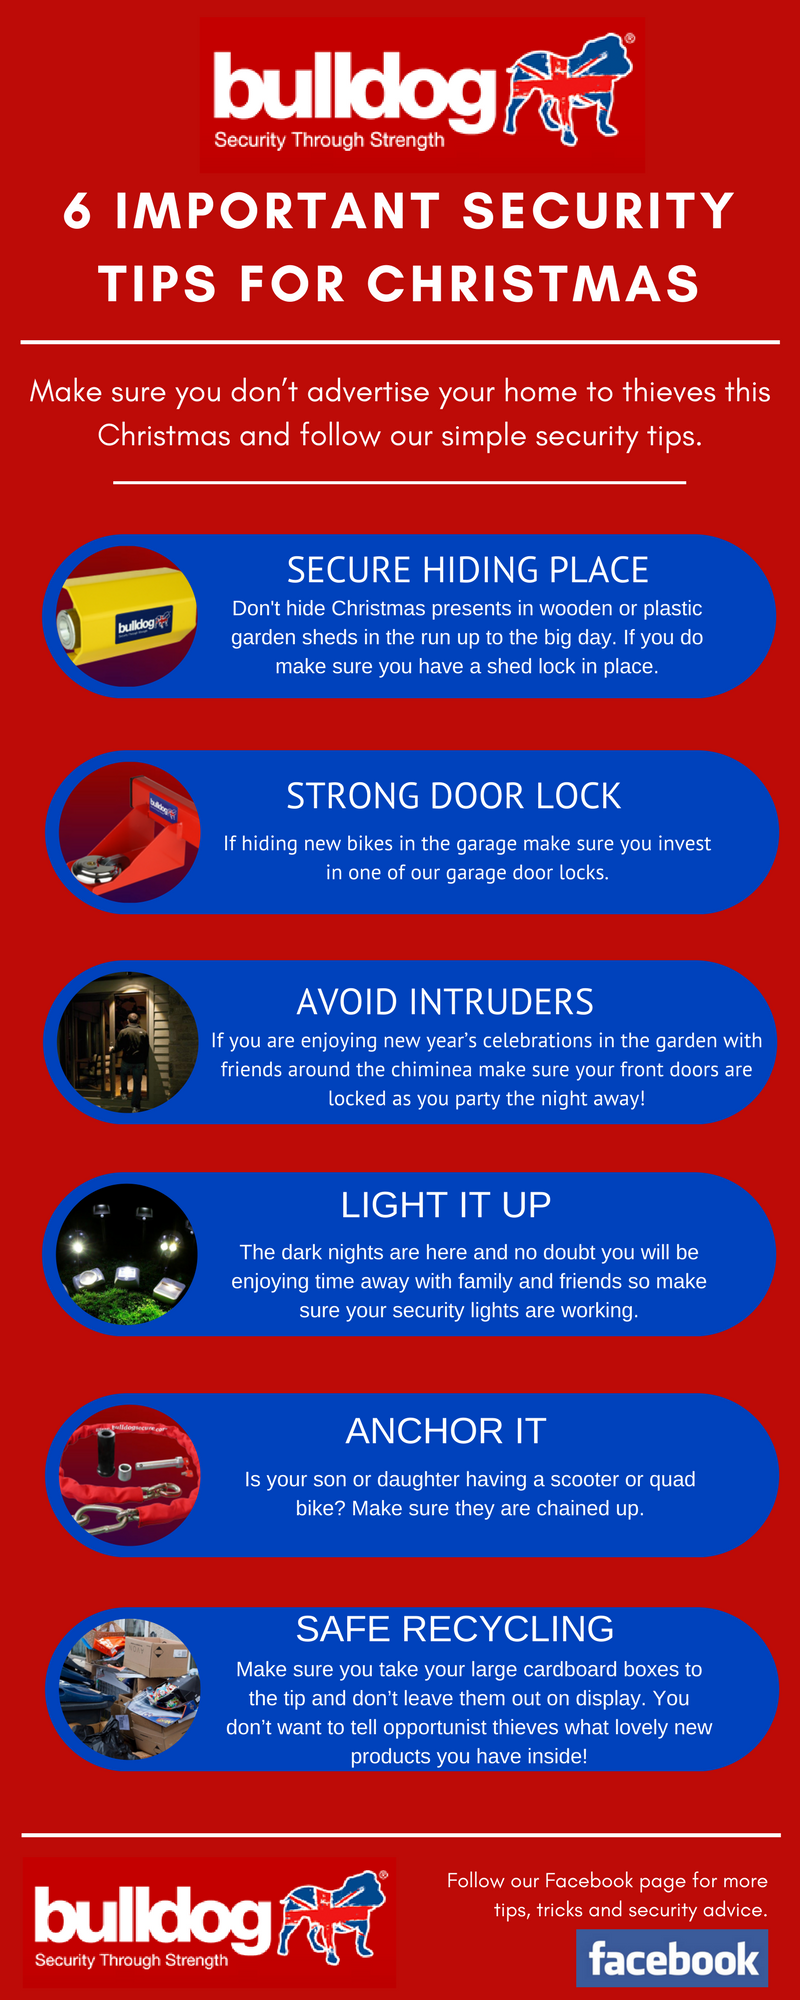 6 important security tips for christmas.png